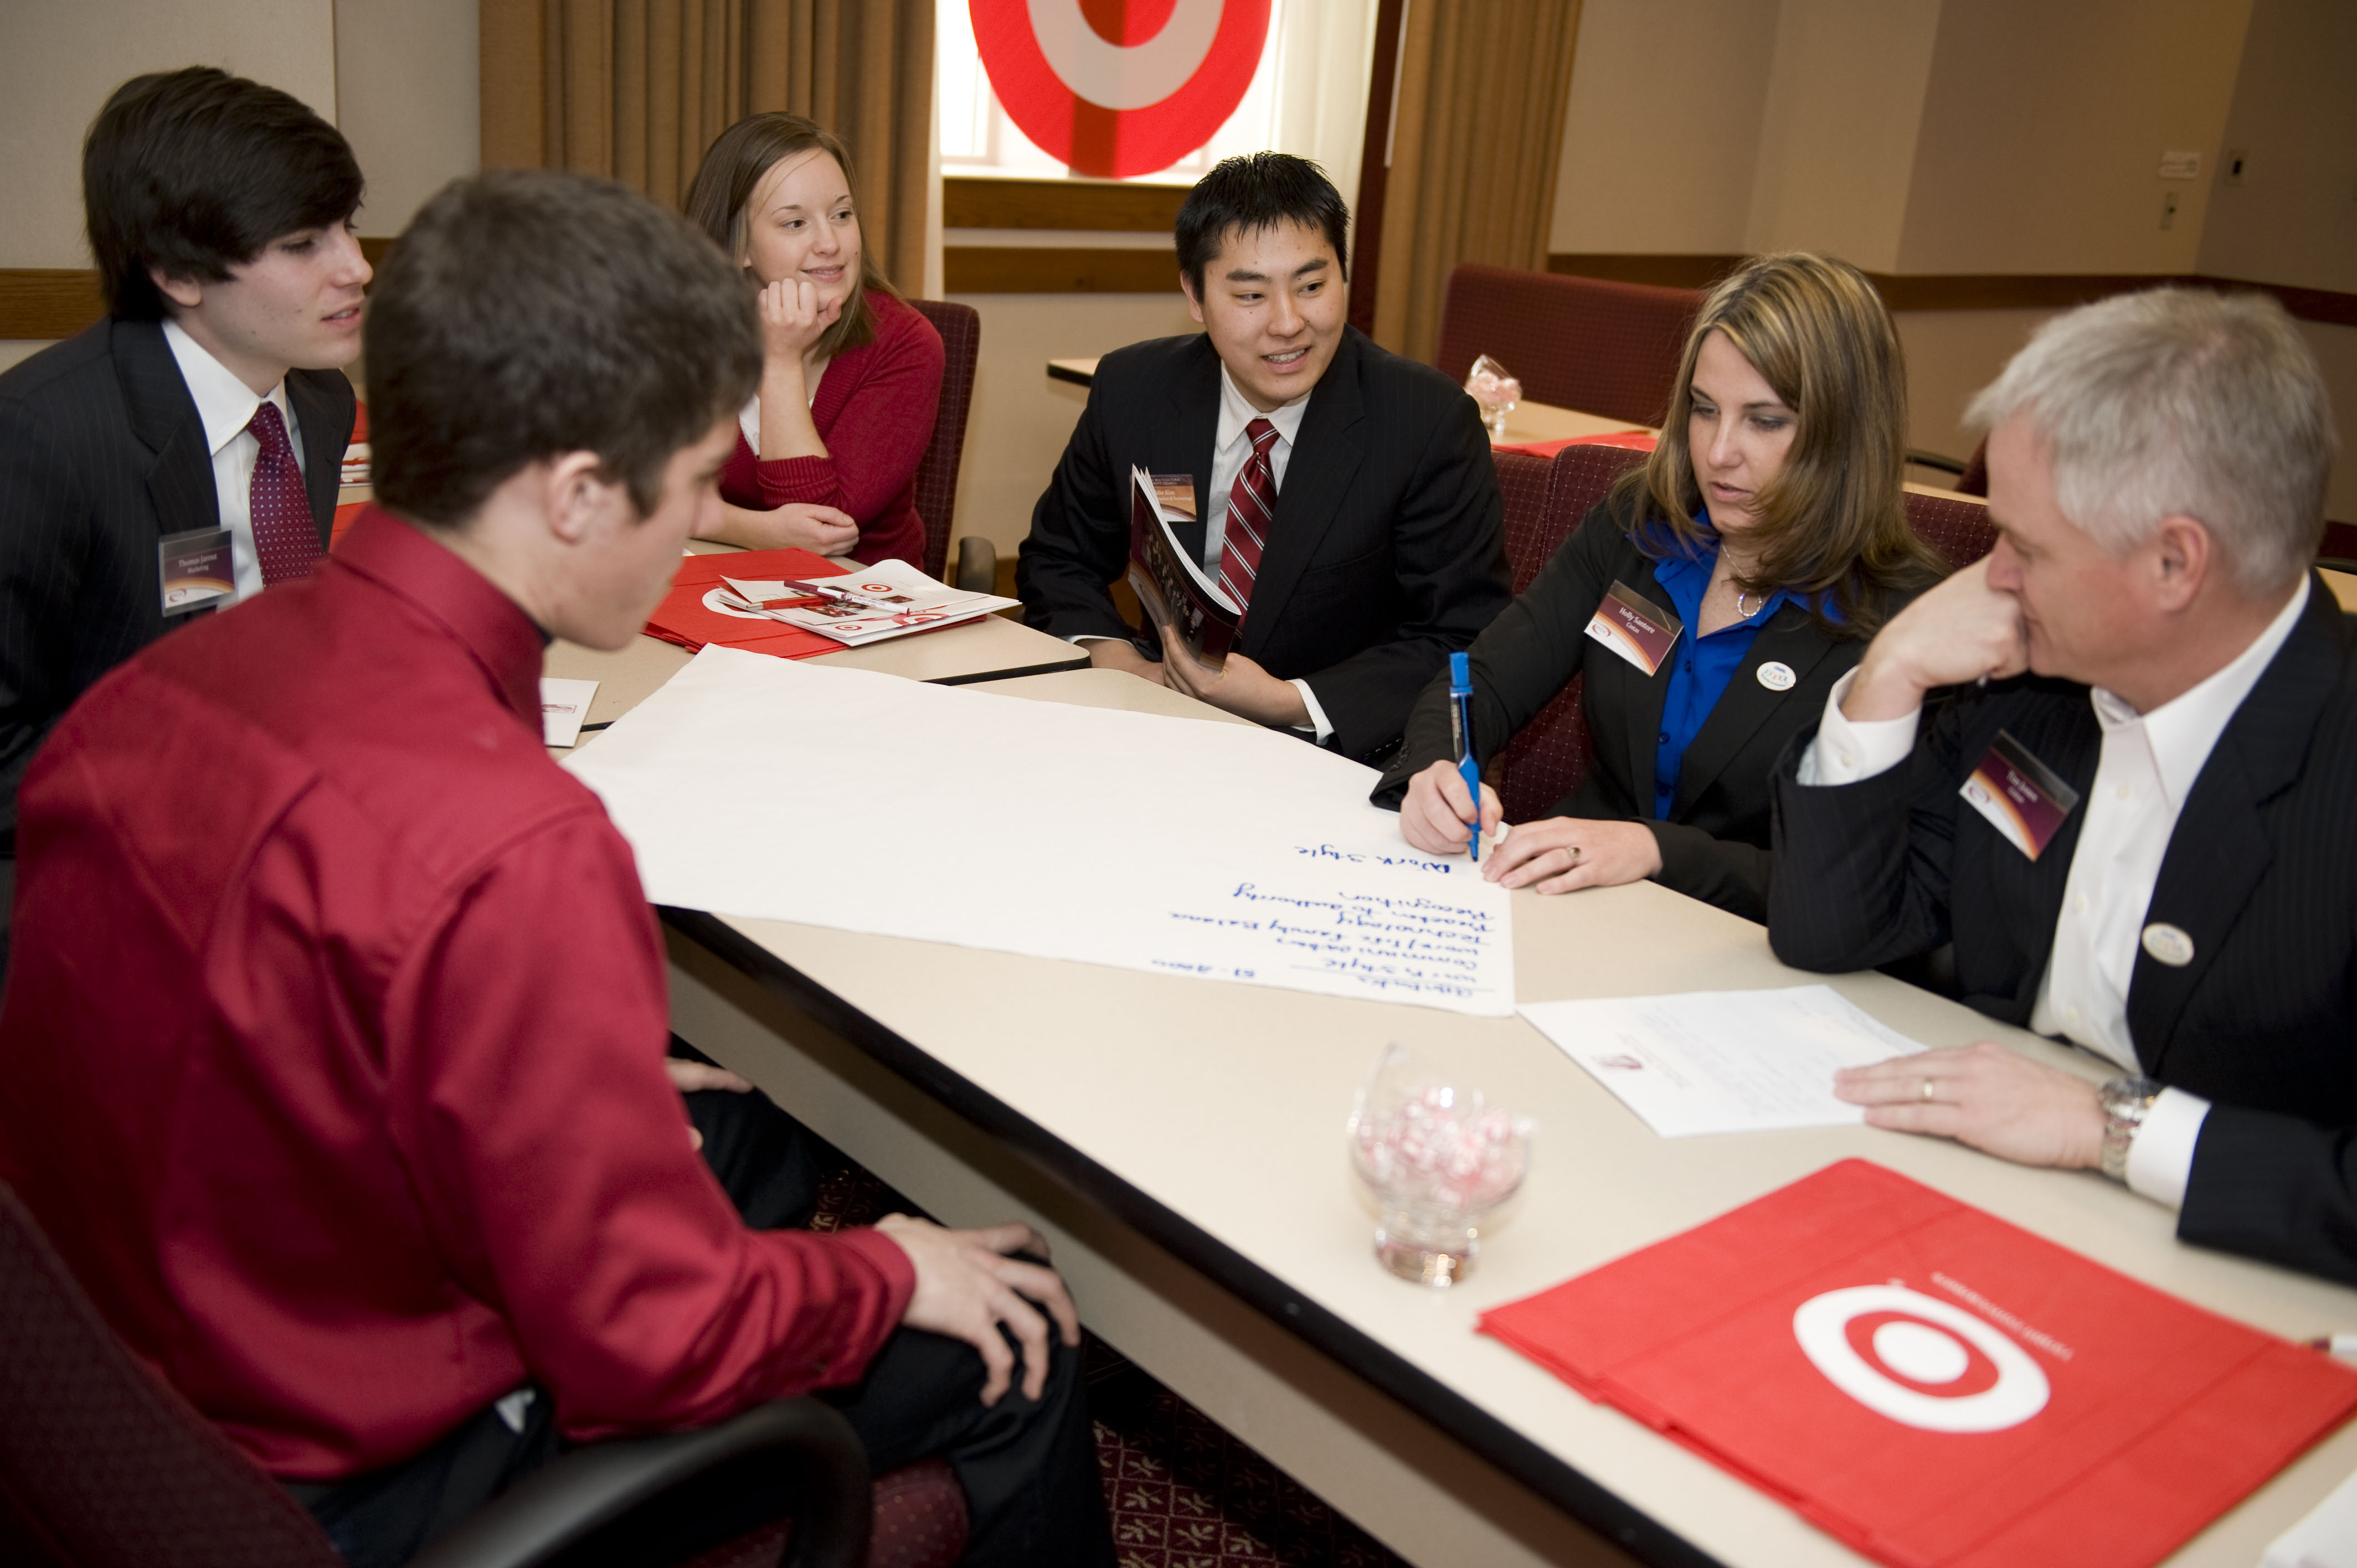 Target is among the companies sponsoring the diversity conference and its workshops.